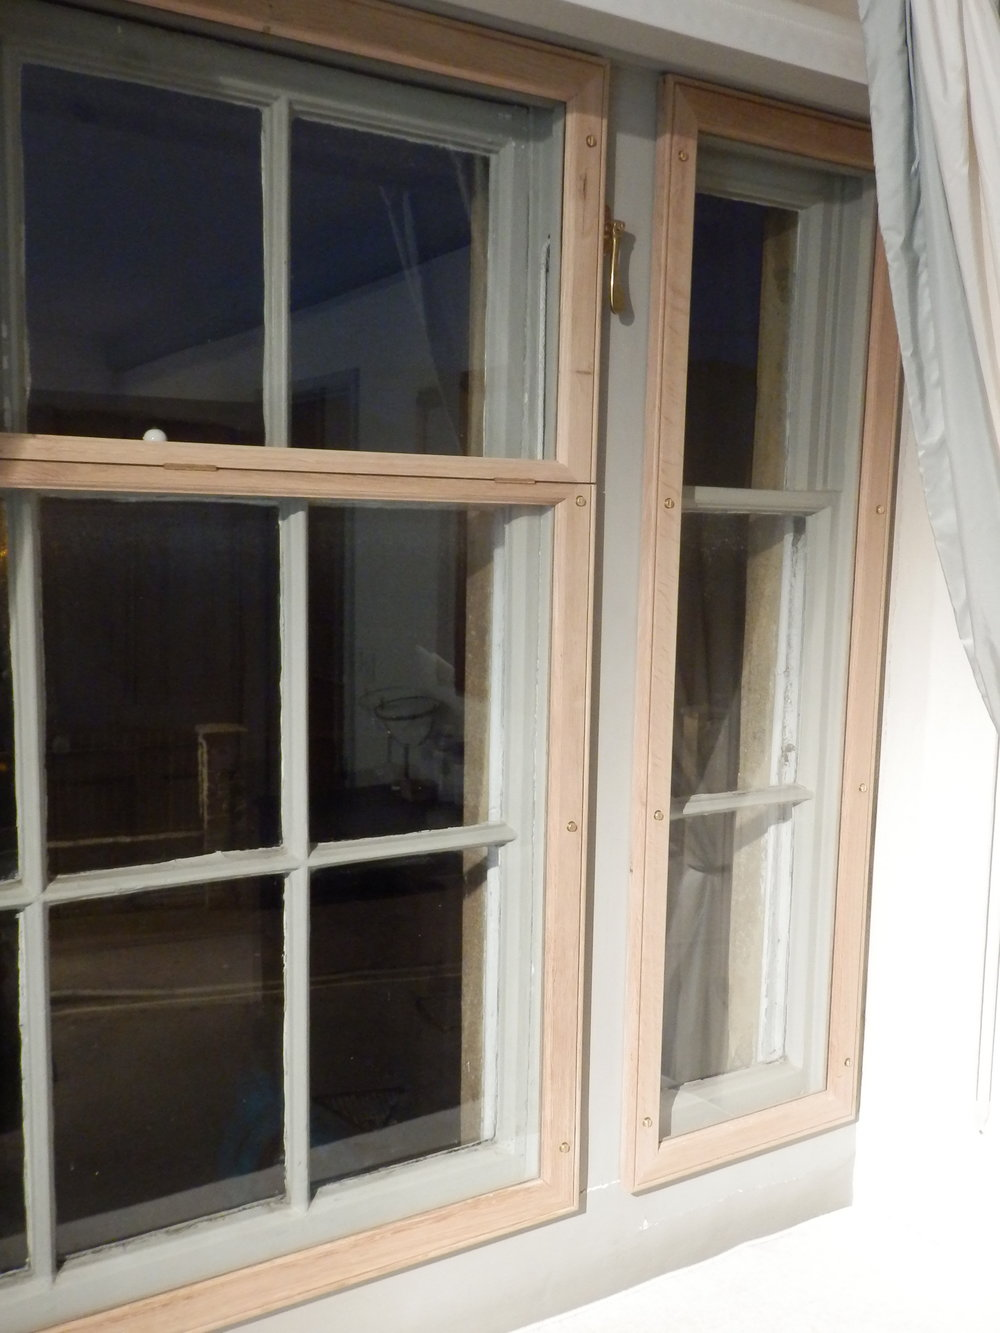 The house in question fronts a road so the bedroom windows were also fitted with opening frames to alleviate road noise. These were made in the same style as the reception room units.